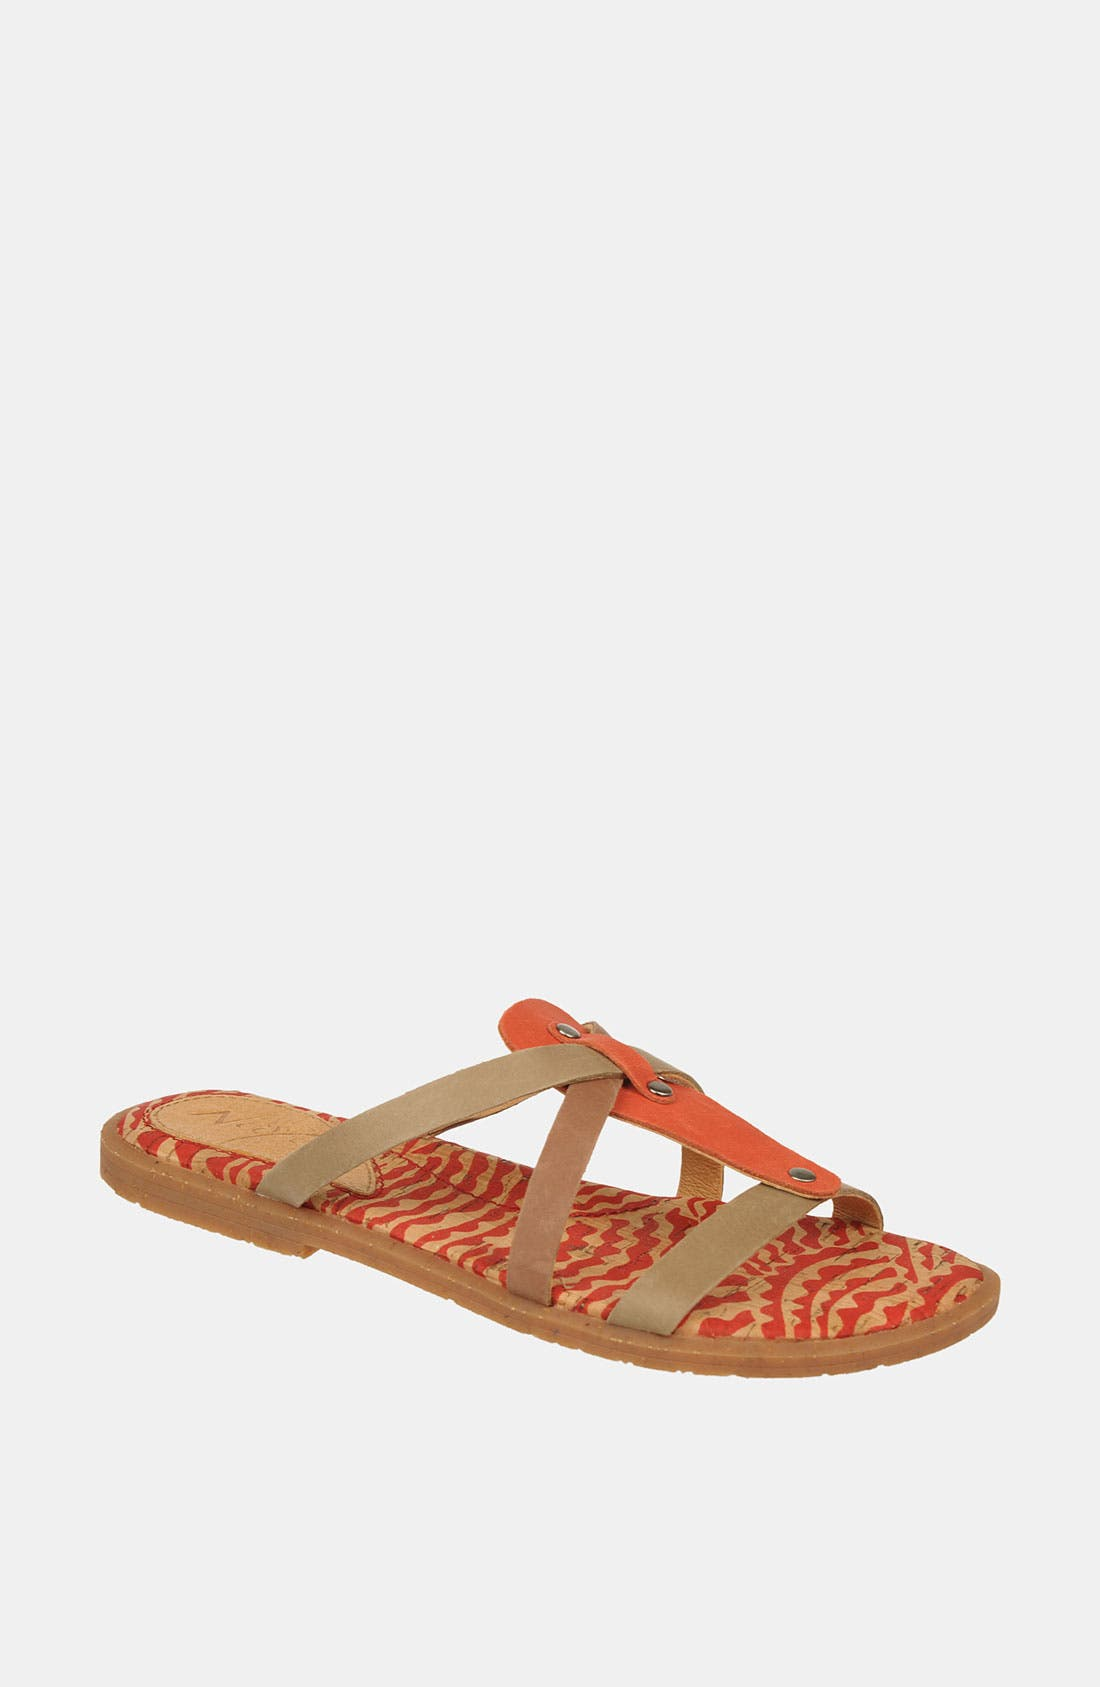 Alternate Image 1 Selected - Naya 'Painted Sock' Sandal